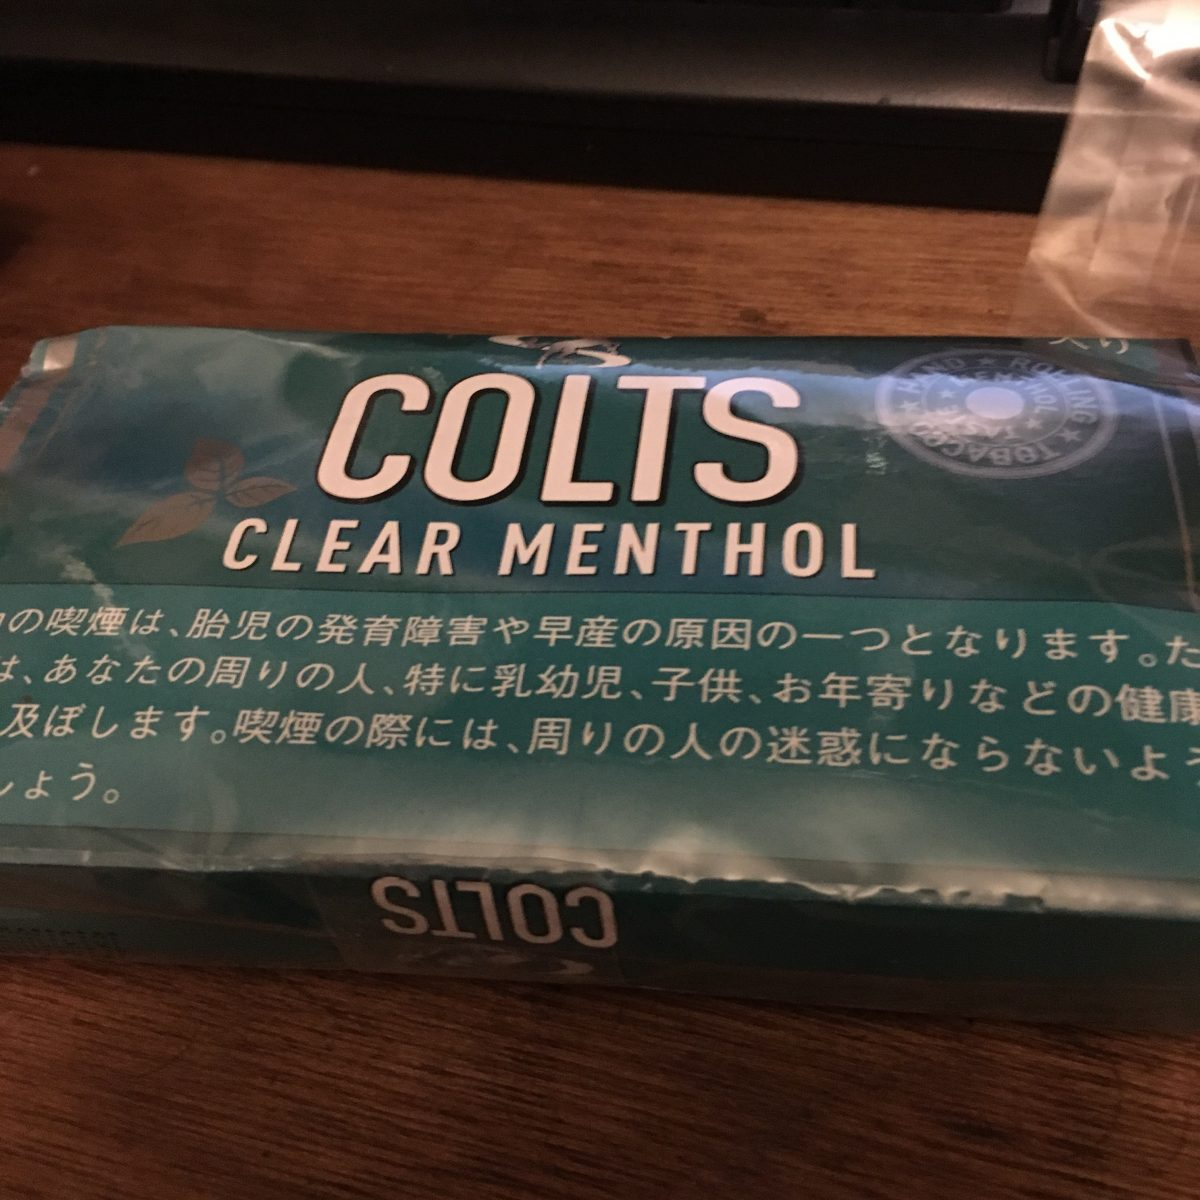 COLTS CLEAR MENTHOL